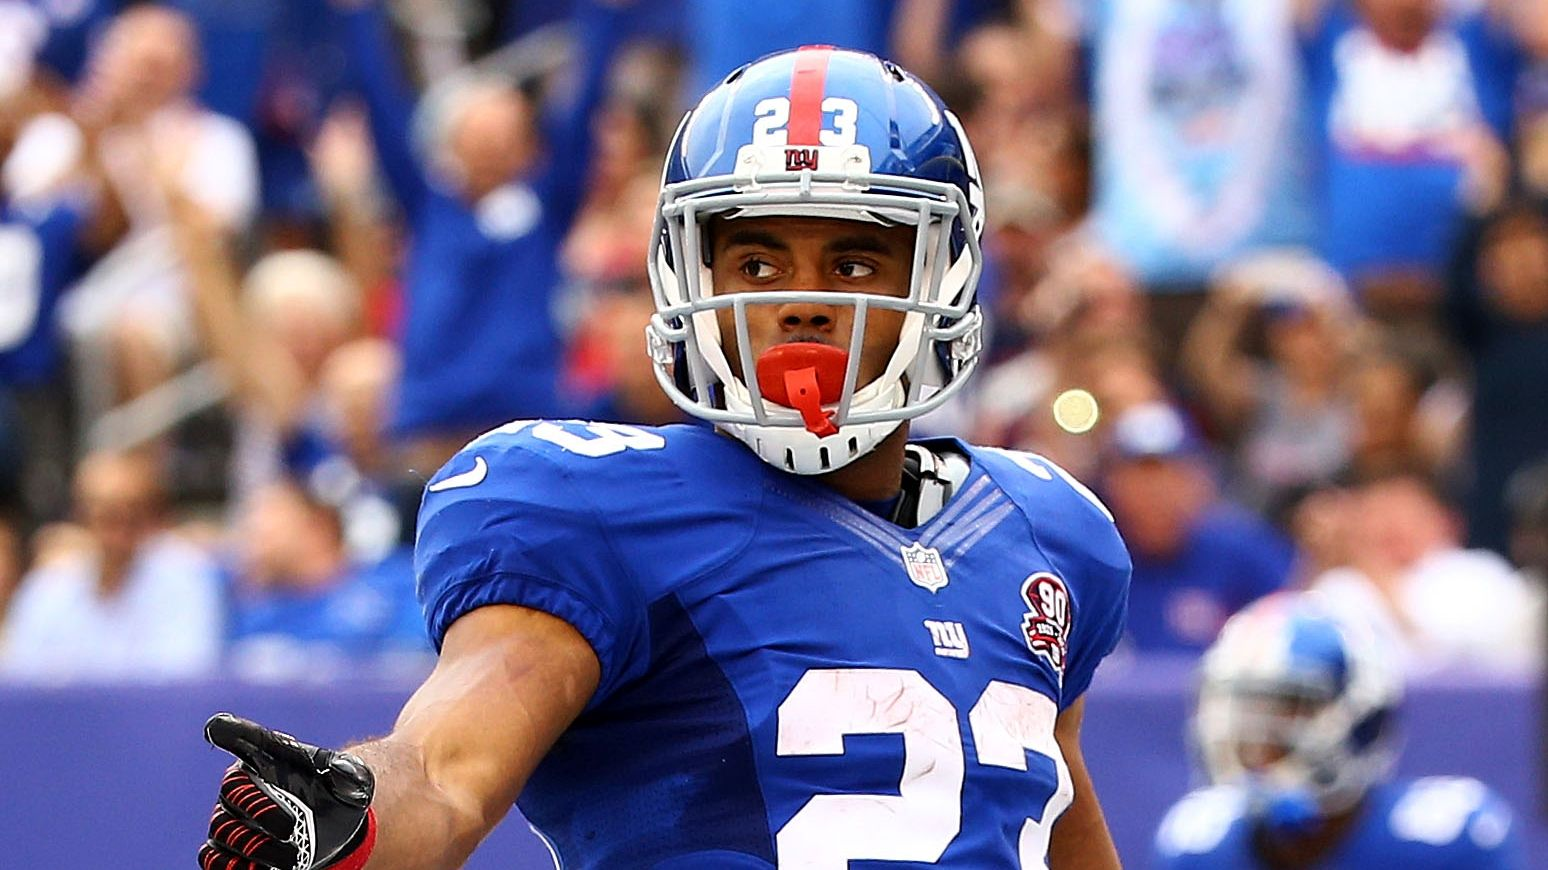 How will the Giants fill Jennings' void?